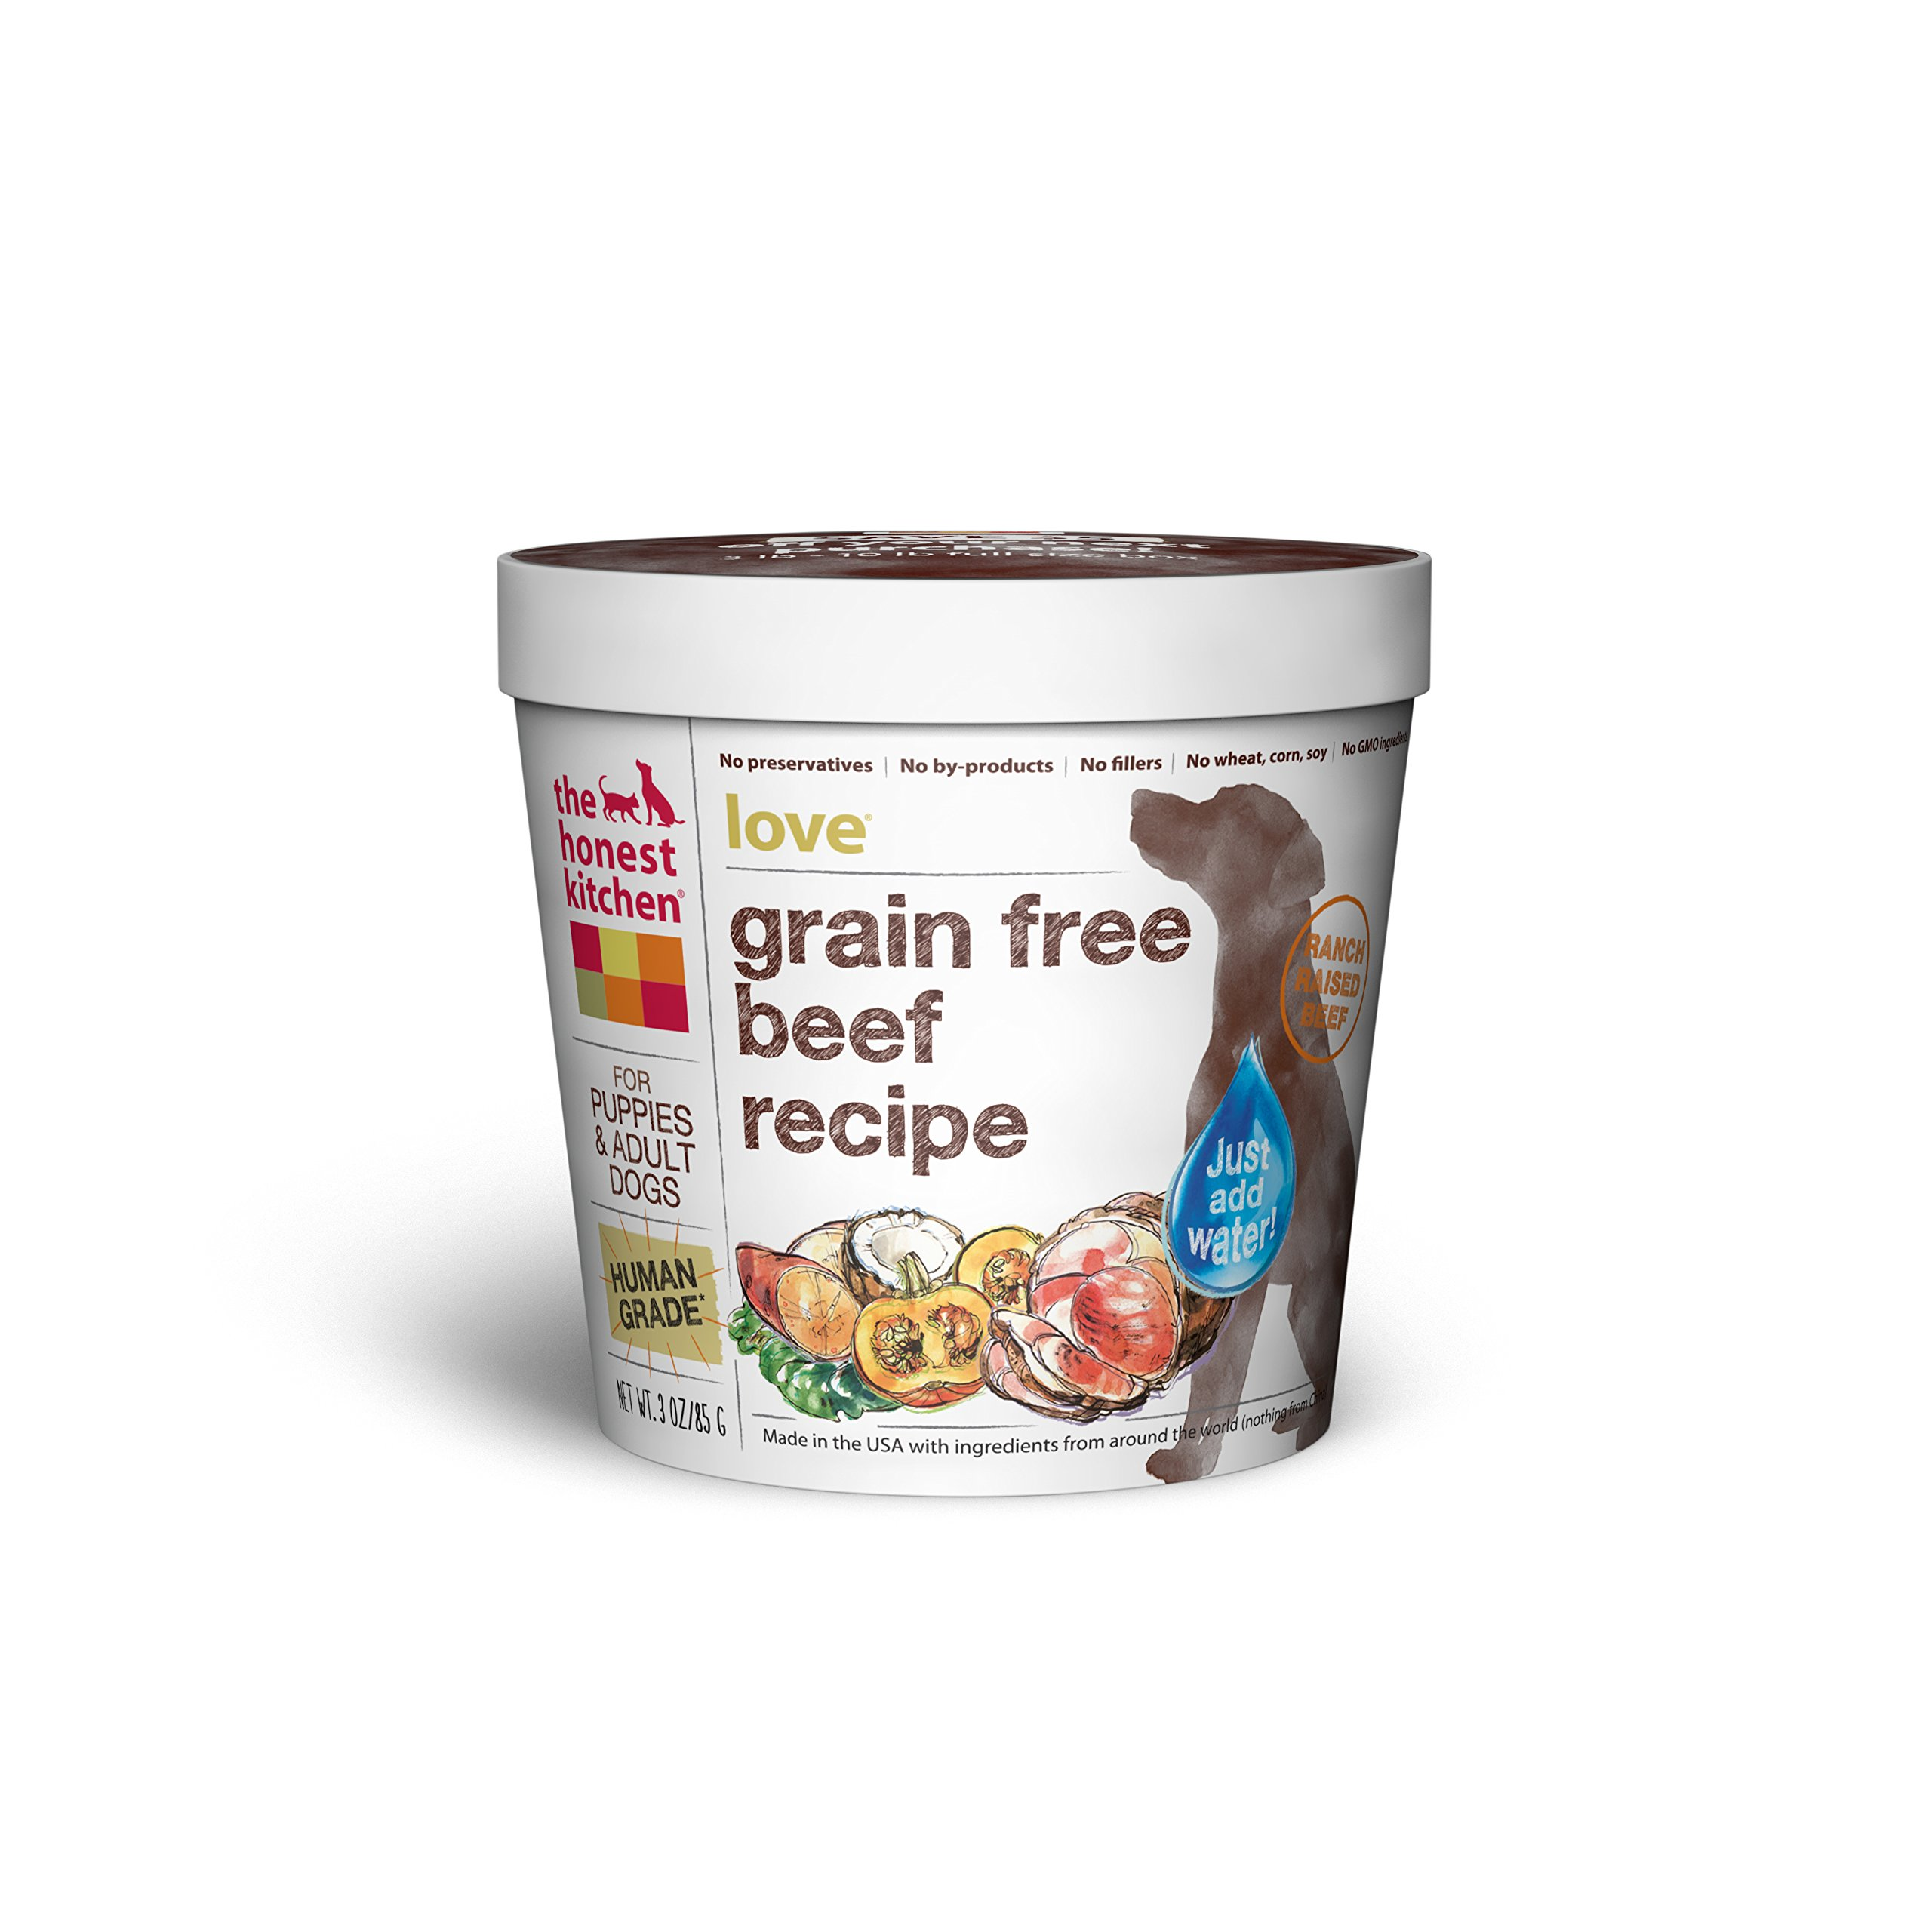 Honest Kitchen The Human Grade Dehydrated Grain Free Beef Dog Food, Single Serve Cup (Tray of 8) - Love